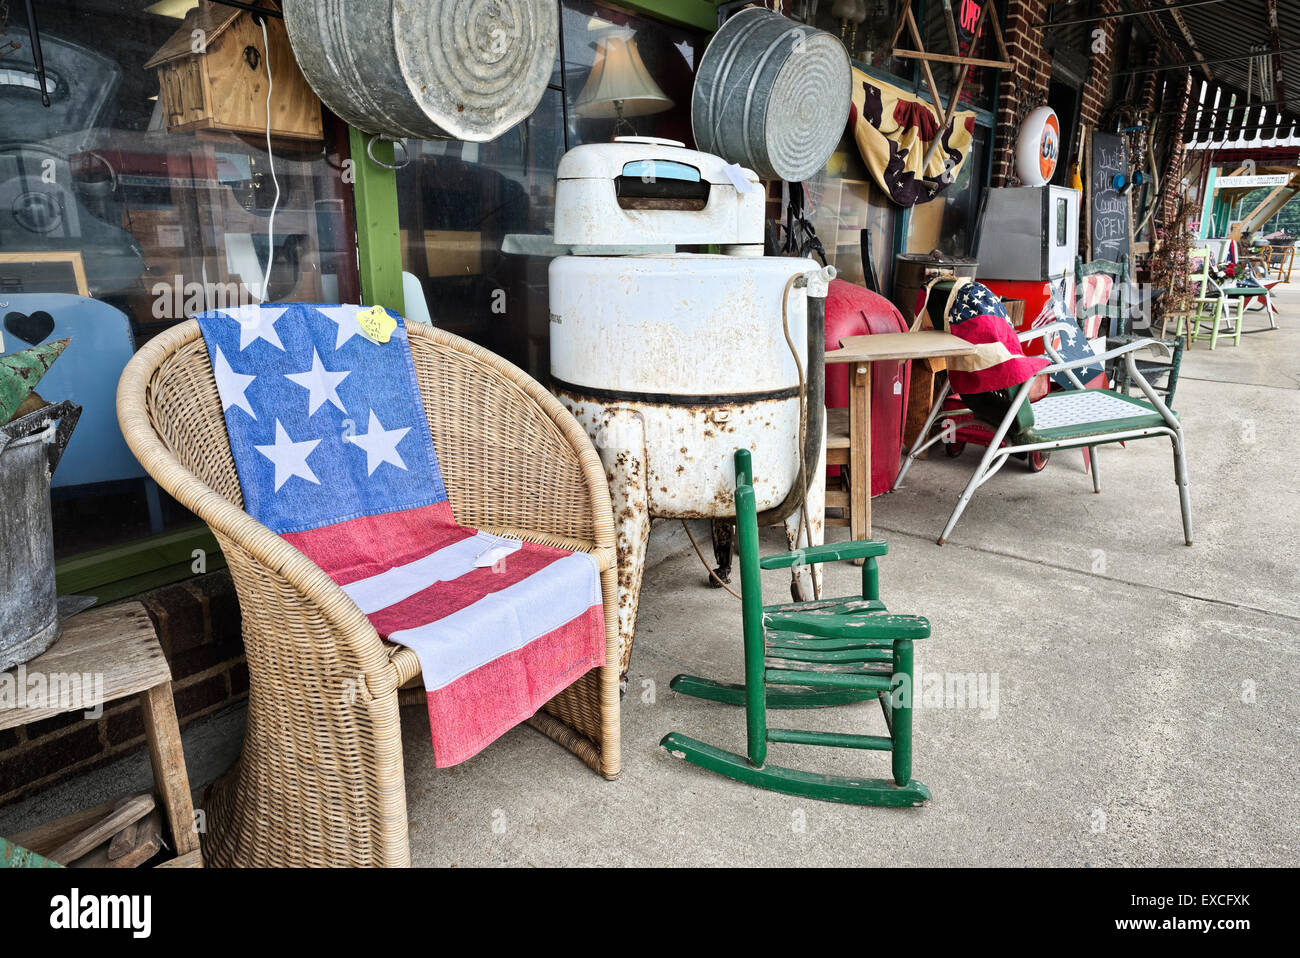 Sidewalk antiques outside antique store Just Plain Country in Walnut Cove, North Carolina - Stock Image